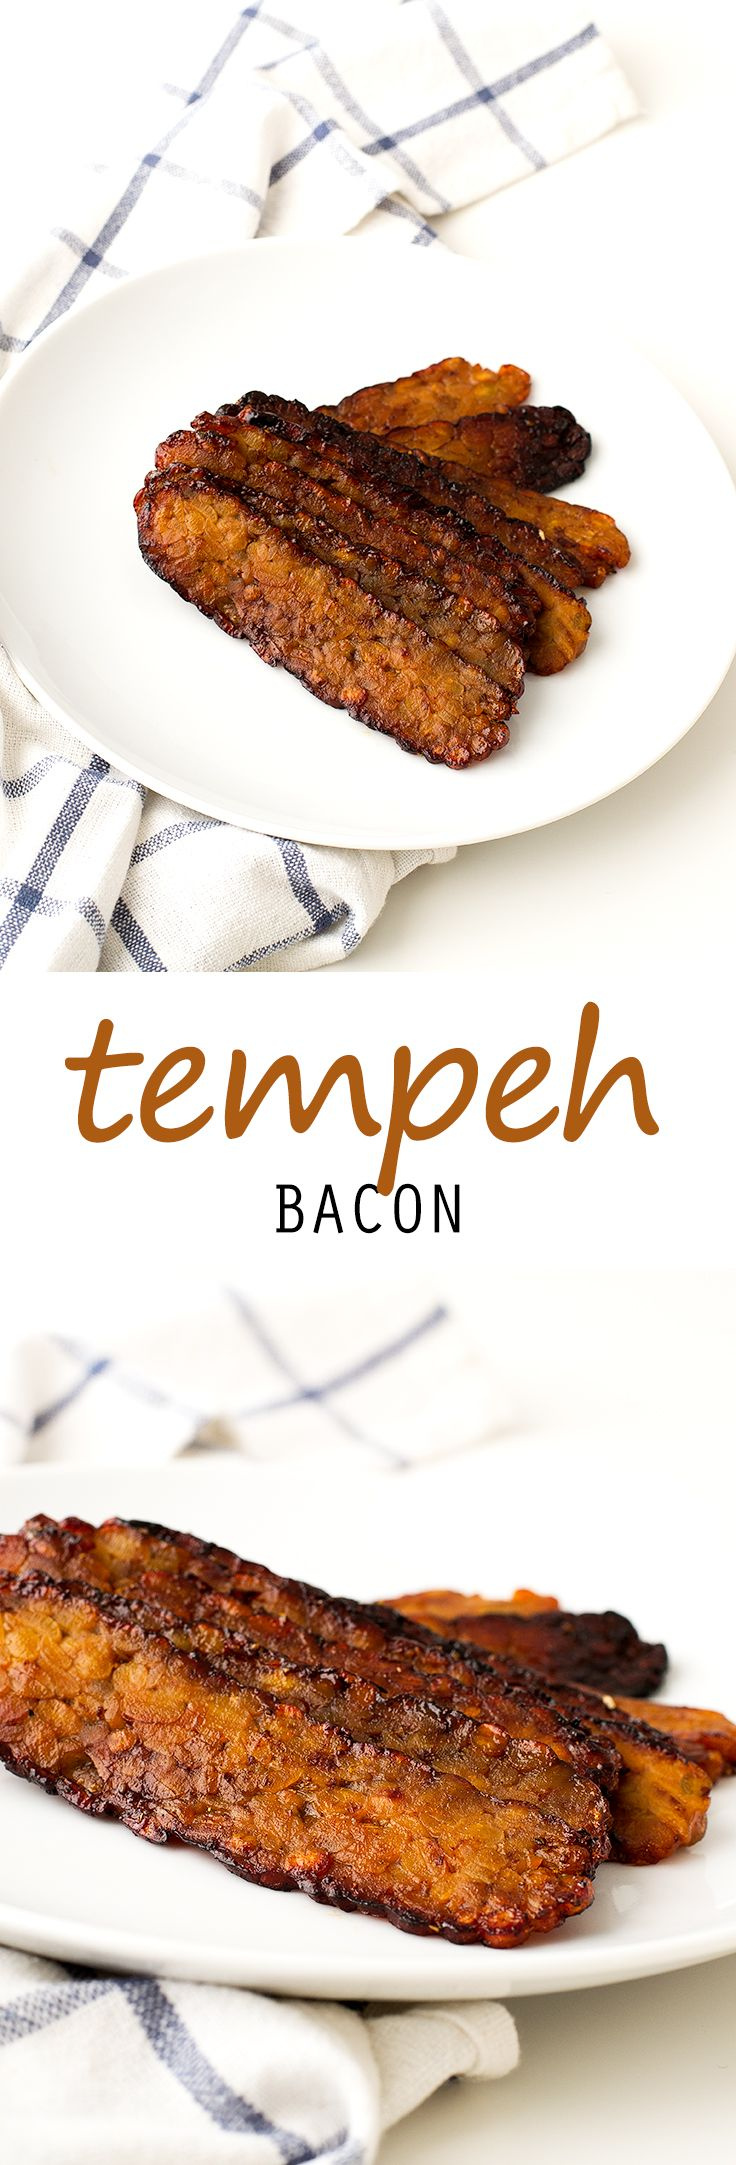 Tempeh Bacon #vegan #glutenfree